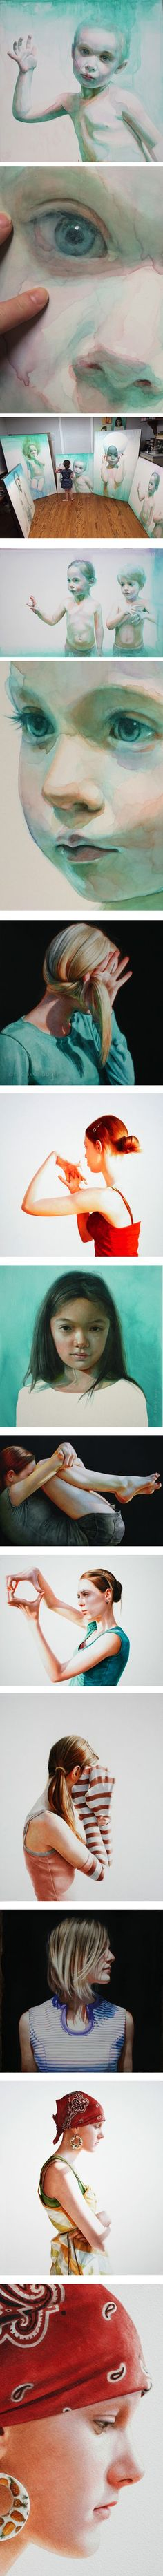 Ali Cavanaugh, watercolor on clay - modern fresco - portraits